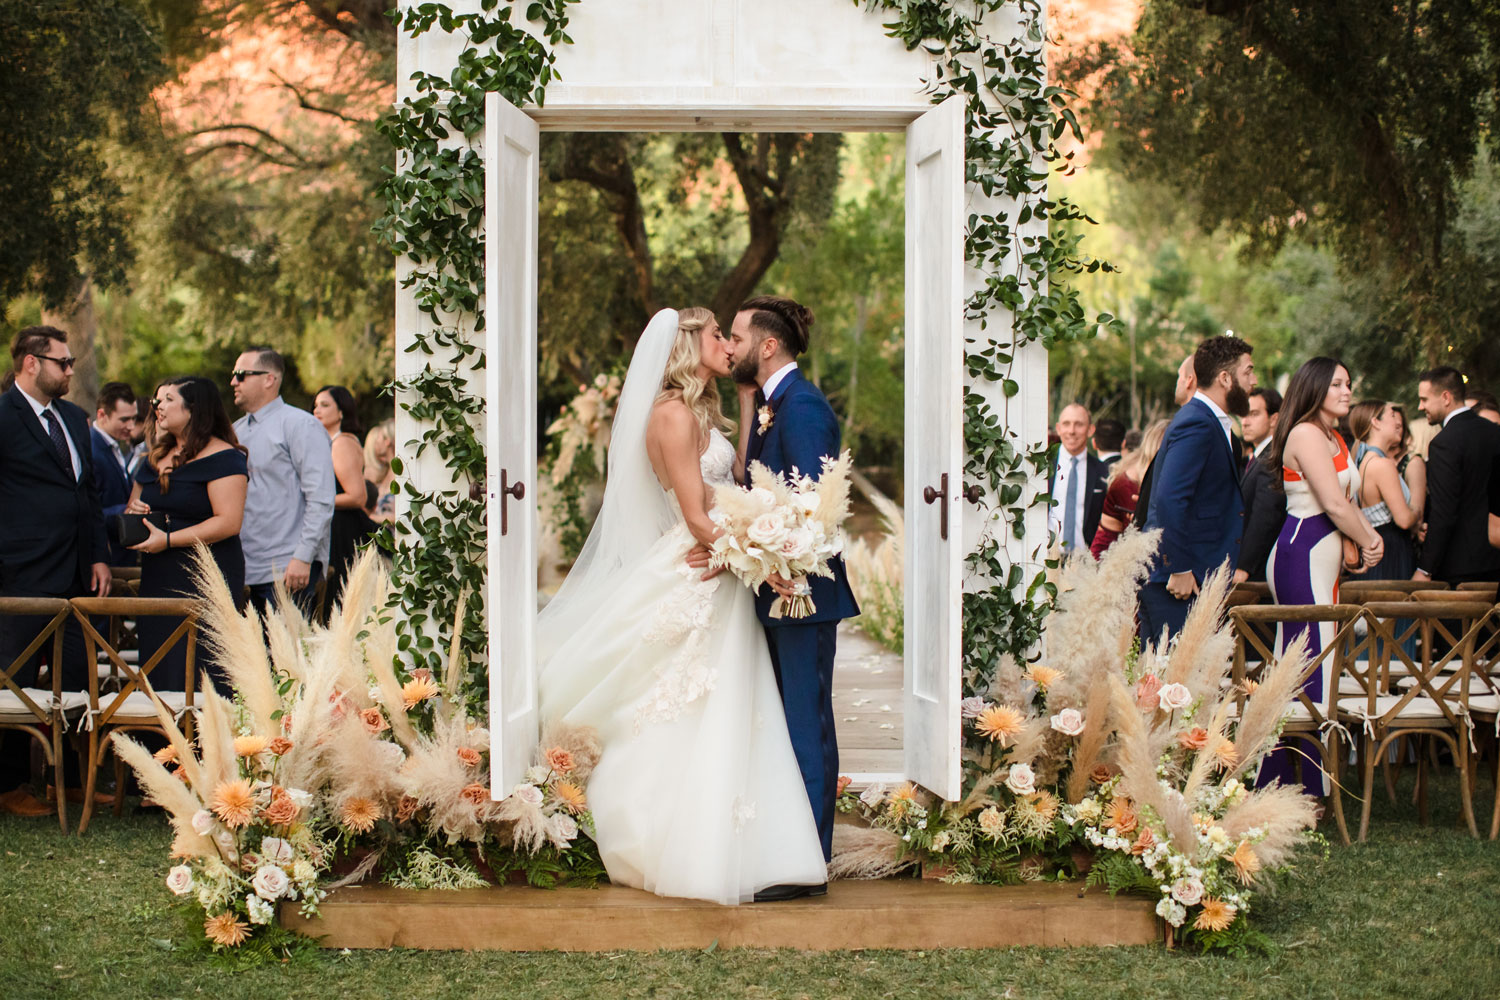 Top Chef Marcel Vigneron and Lauren Rae Levy real wedding planned by Tessa Lyn Events bride and groom kiss doorway to aisle